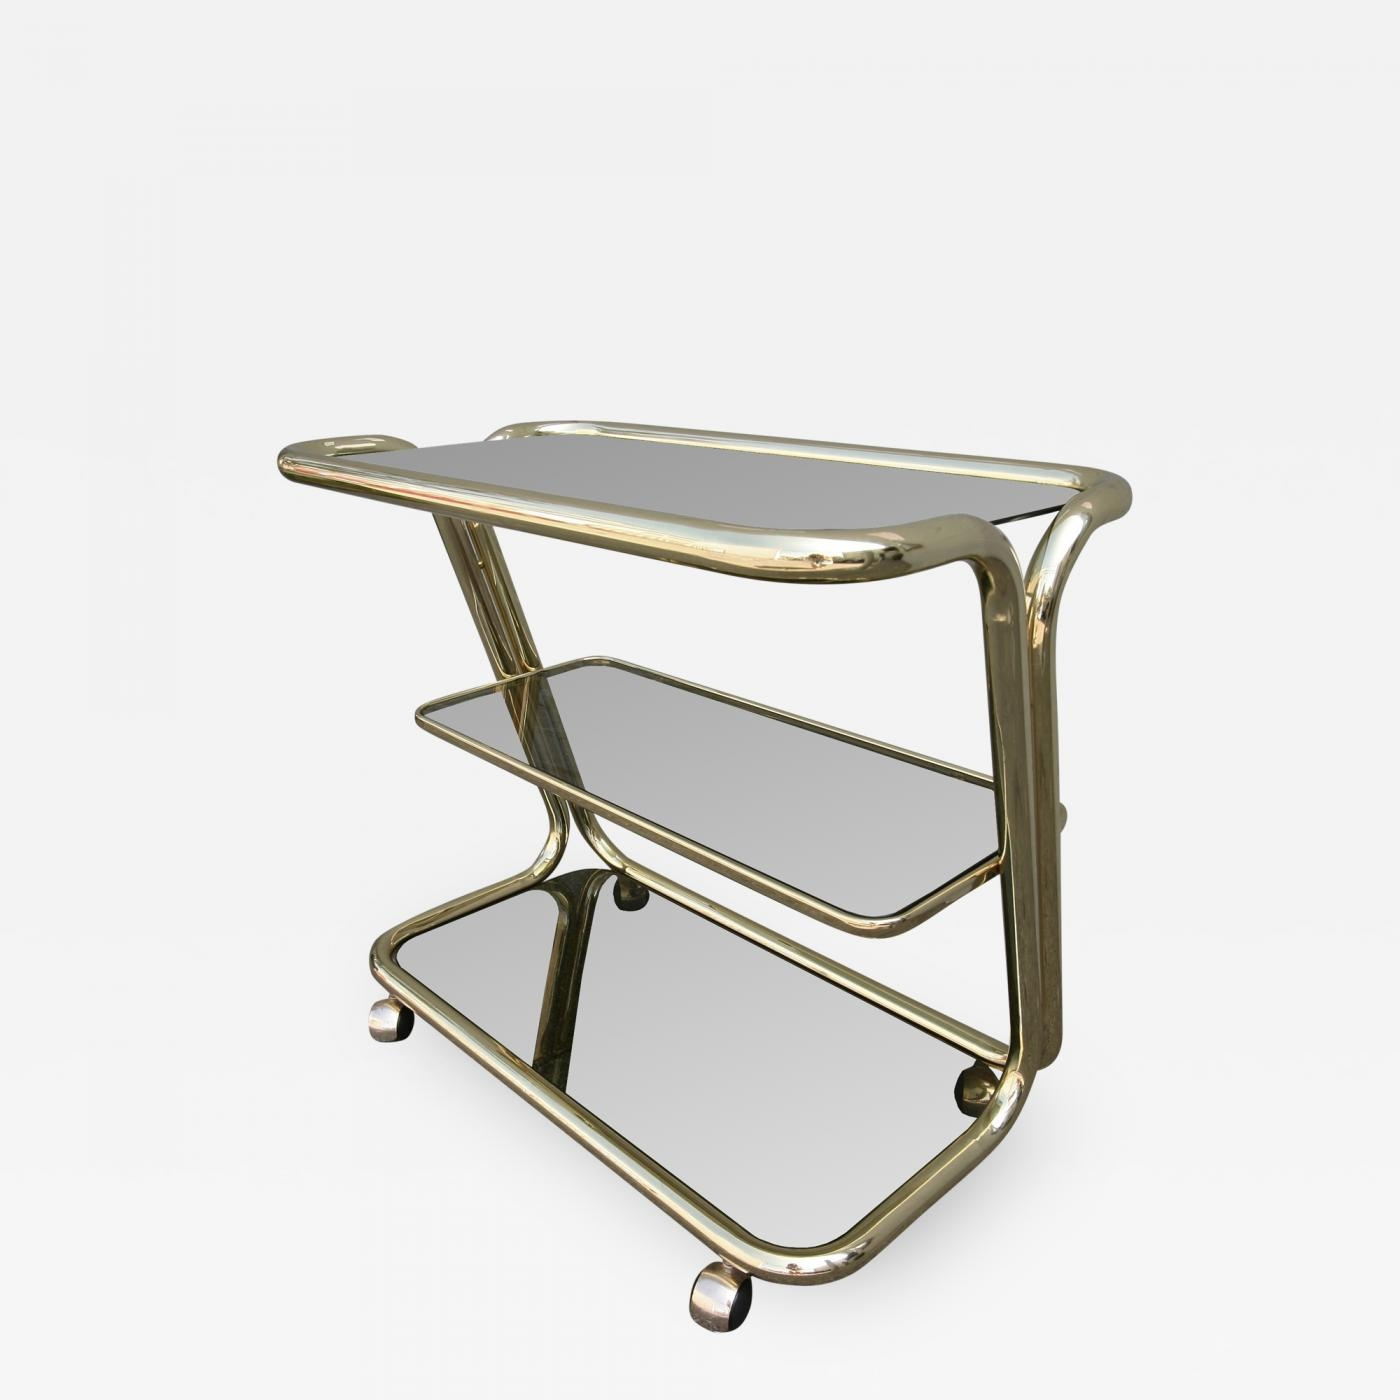 Three Tiered 1970s Brass Bar Cart With Smoked Glass Shelves Intended For Smoked Glass Shelves (Image 13 of 15)